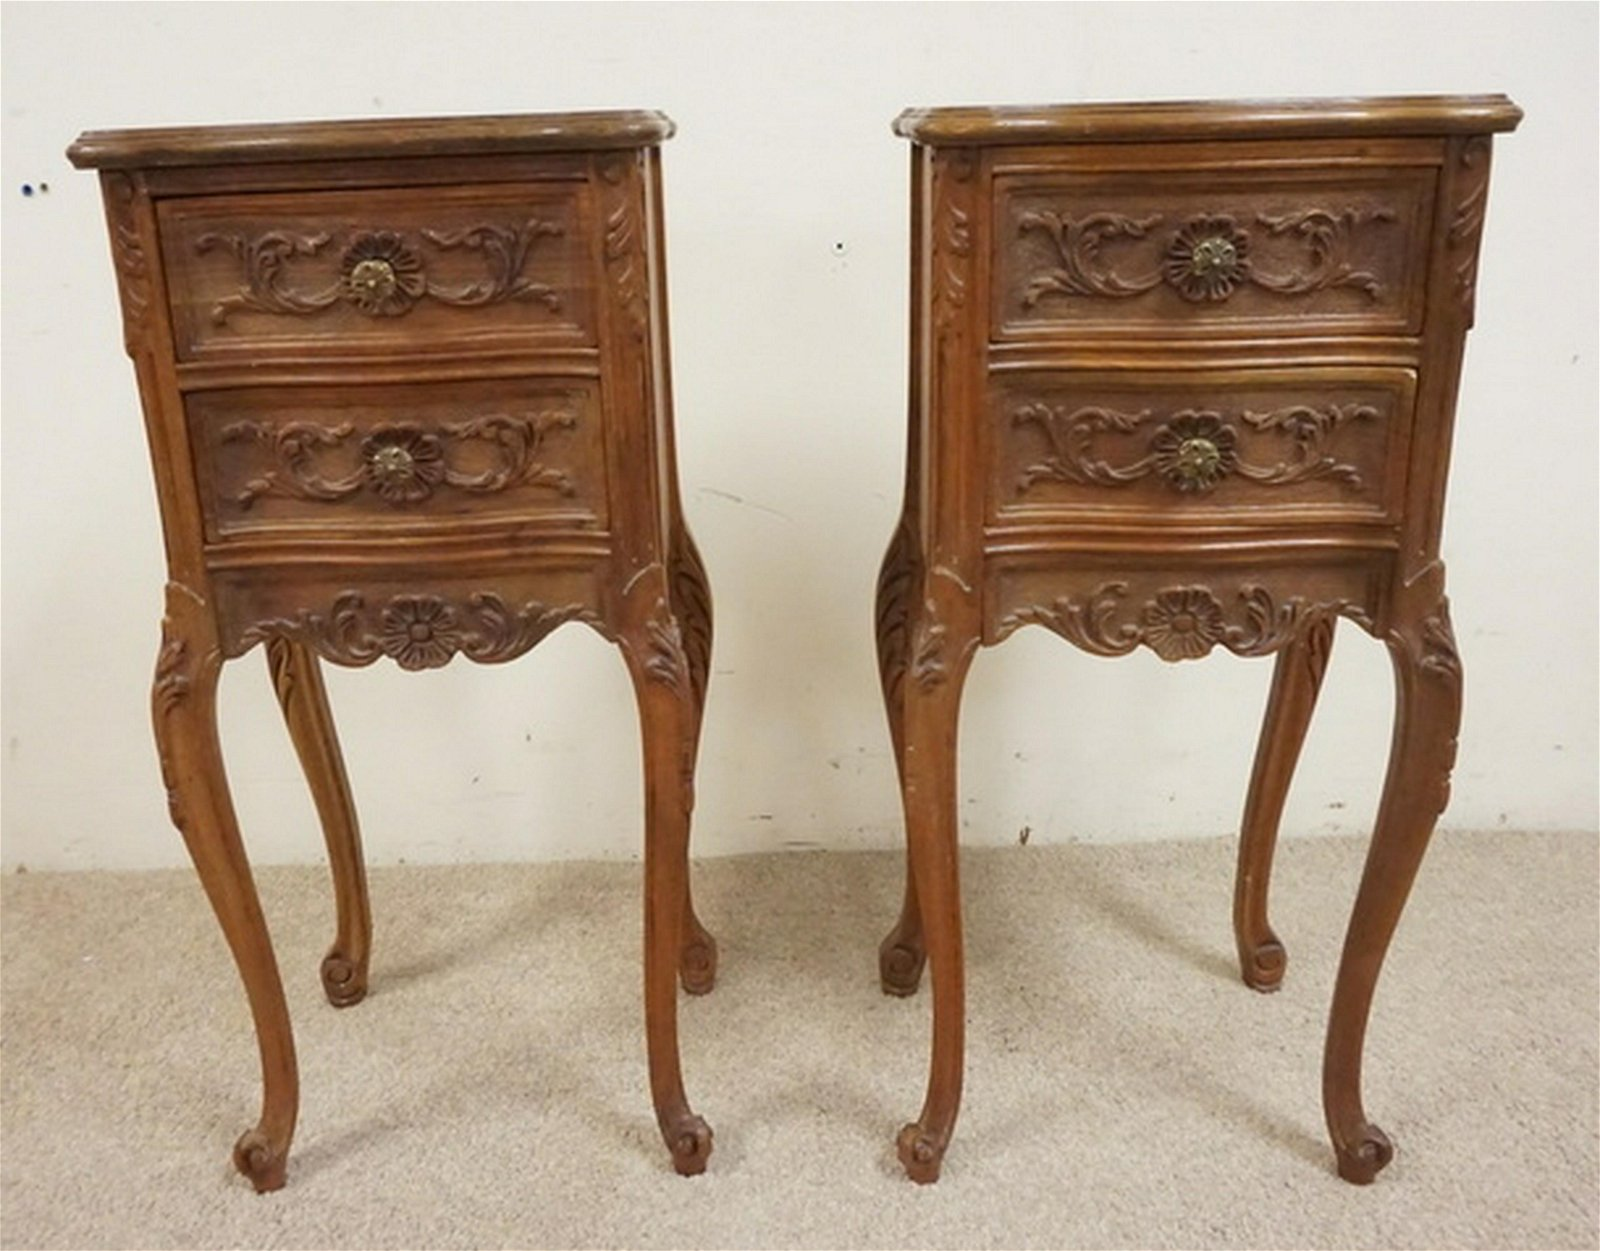 PAIR OF CARVED WALNUT NIGHTSTANDS